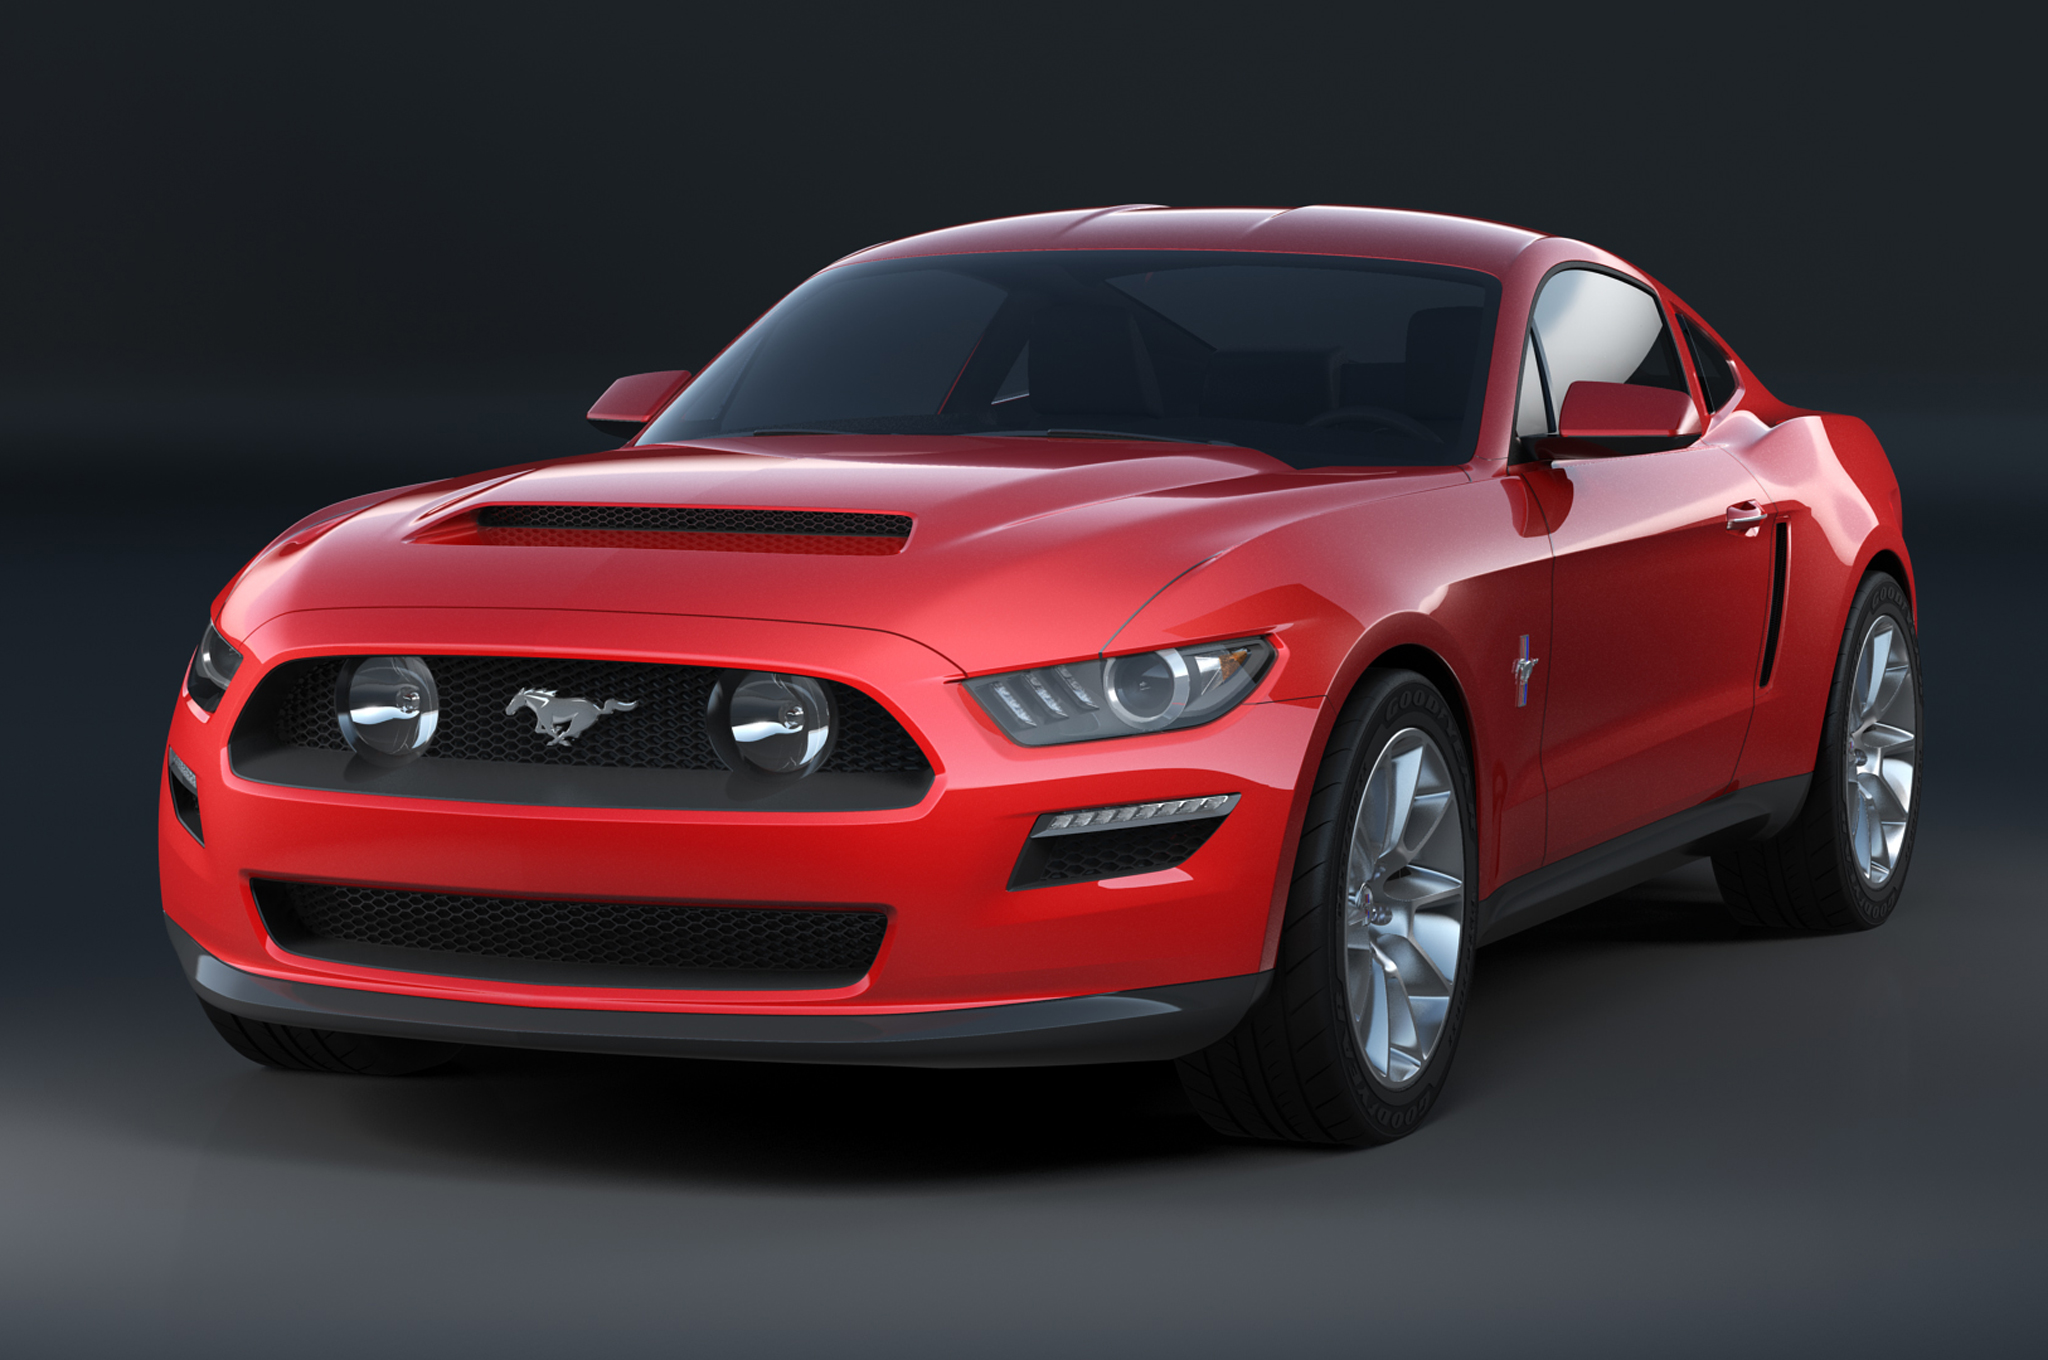 Makings of a Mustang  The 2015 Ford Mustang From Sketch To     Makings of a Mustang  The 2015 Ford Mustang From Sketch To Production